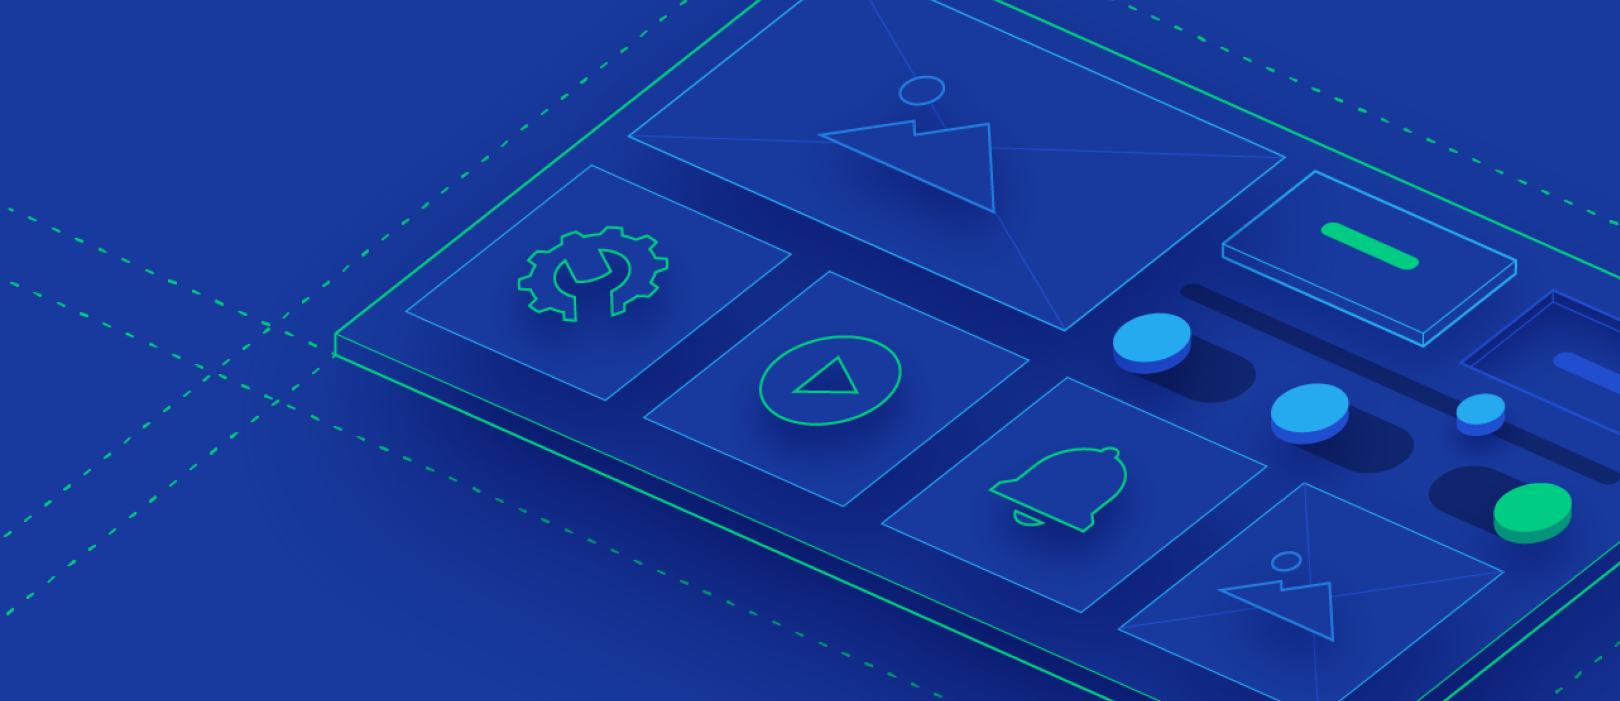 Frame 1 11 - How to Successfully Use Animations in Your Mobile App: Types of Animations and Principles of Design